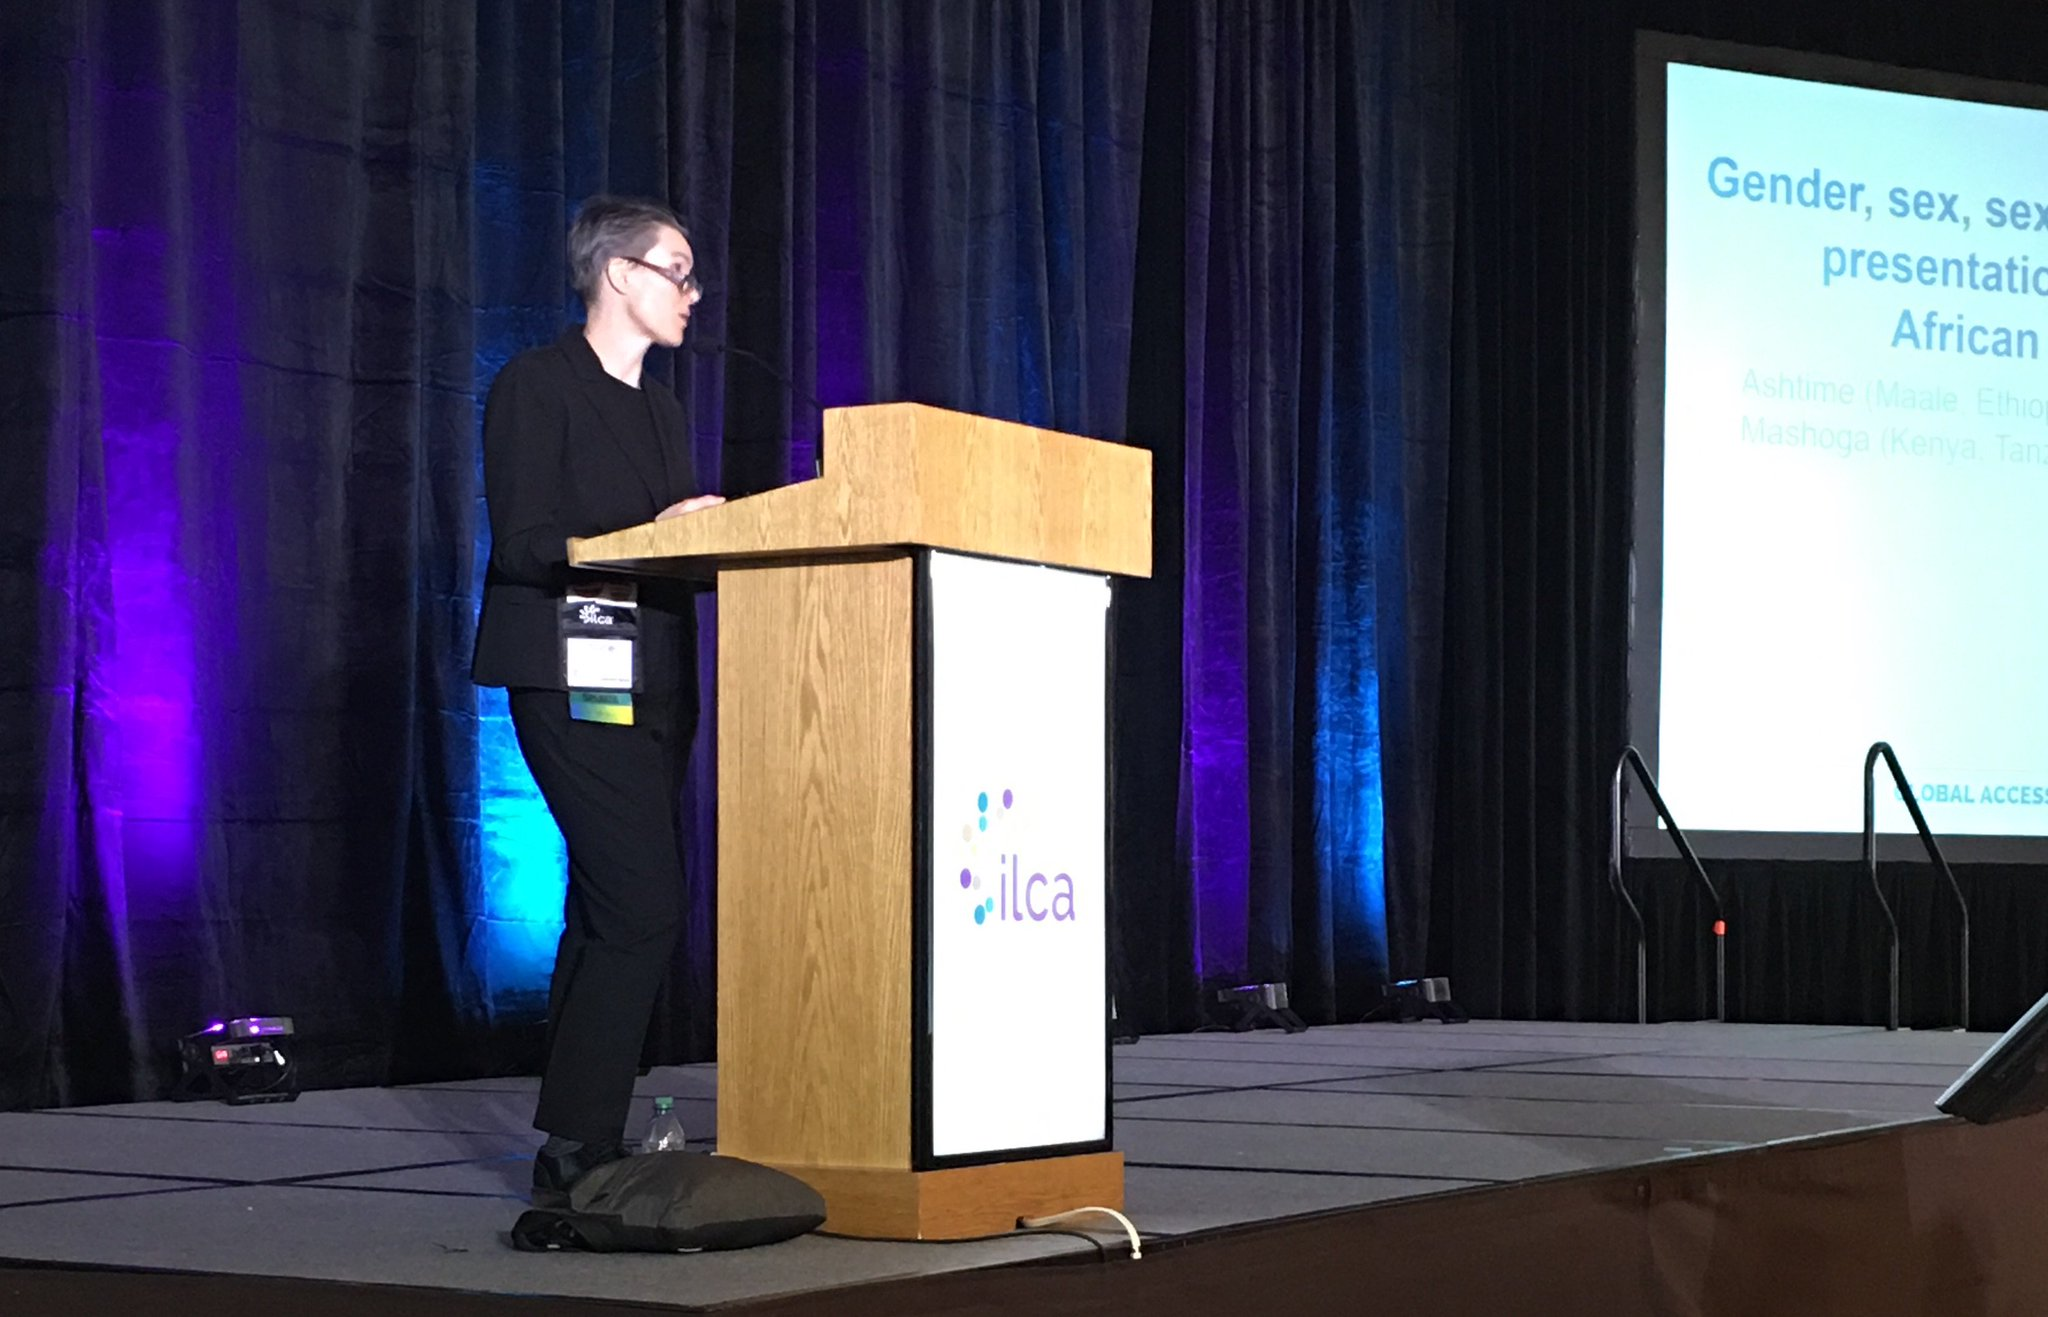 Alice Farrow, IBCLC, presenting at #ilca17 on Gender Diversity, Language, and Inclusion for Lactation Specialists. https://t.co/jT25nLnJHz